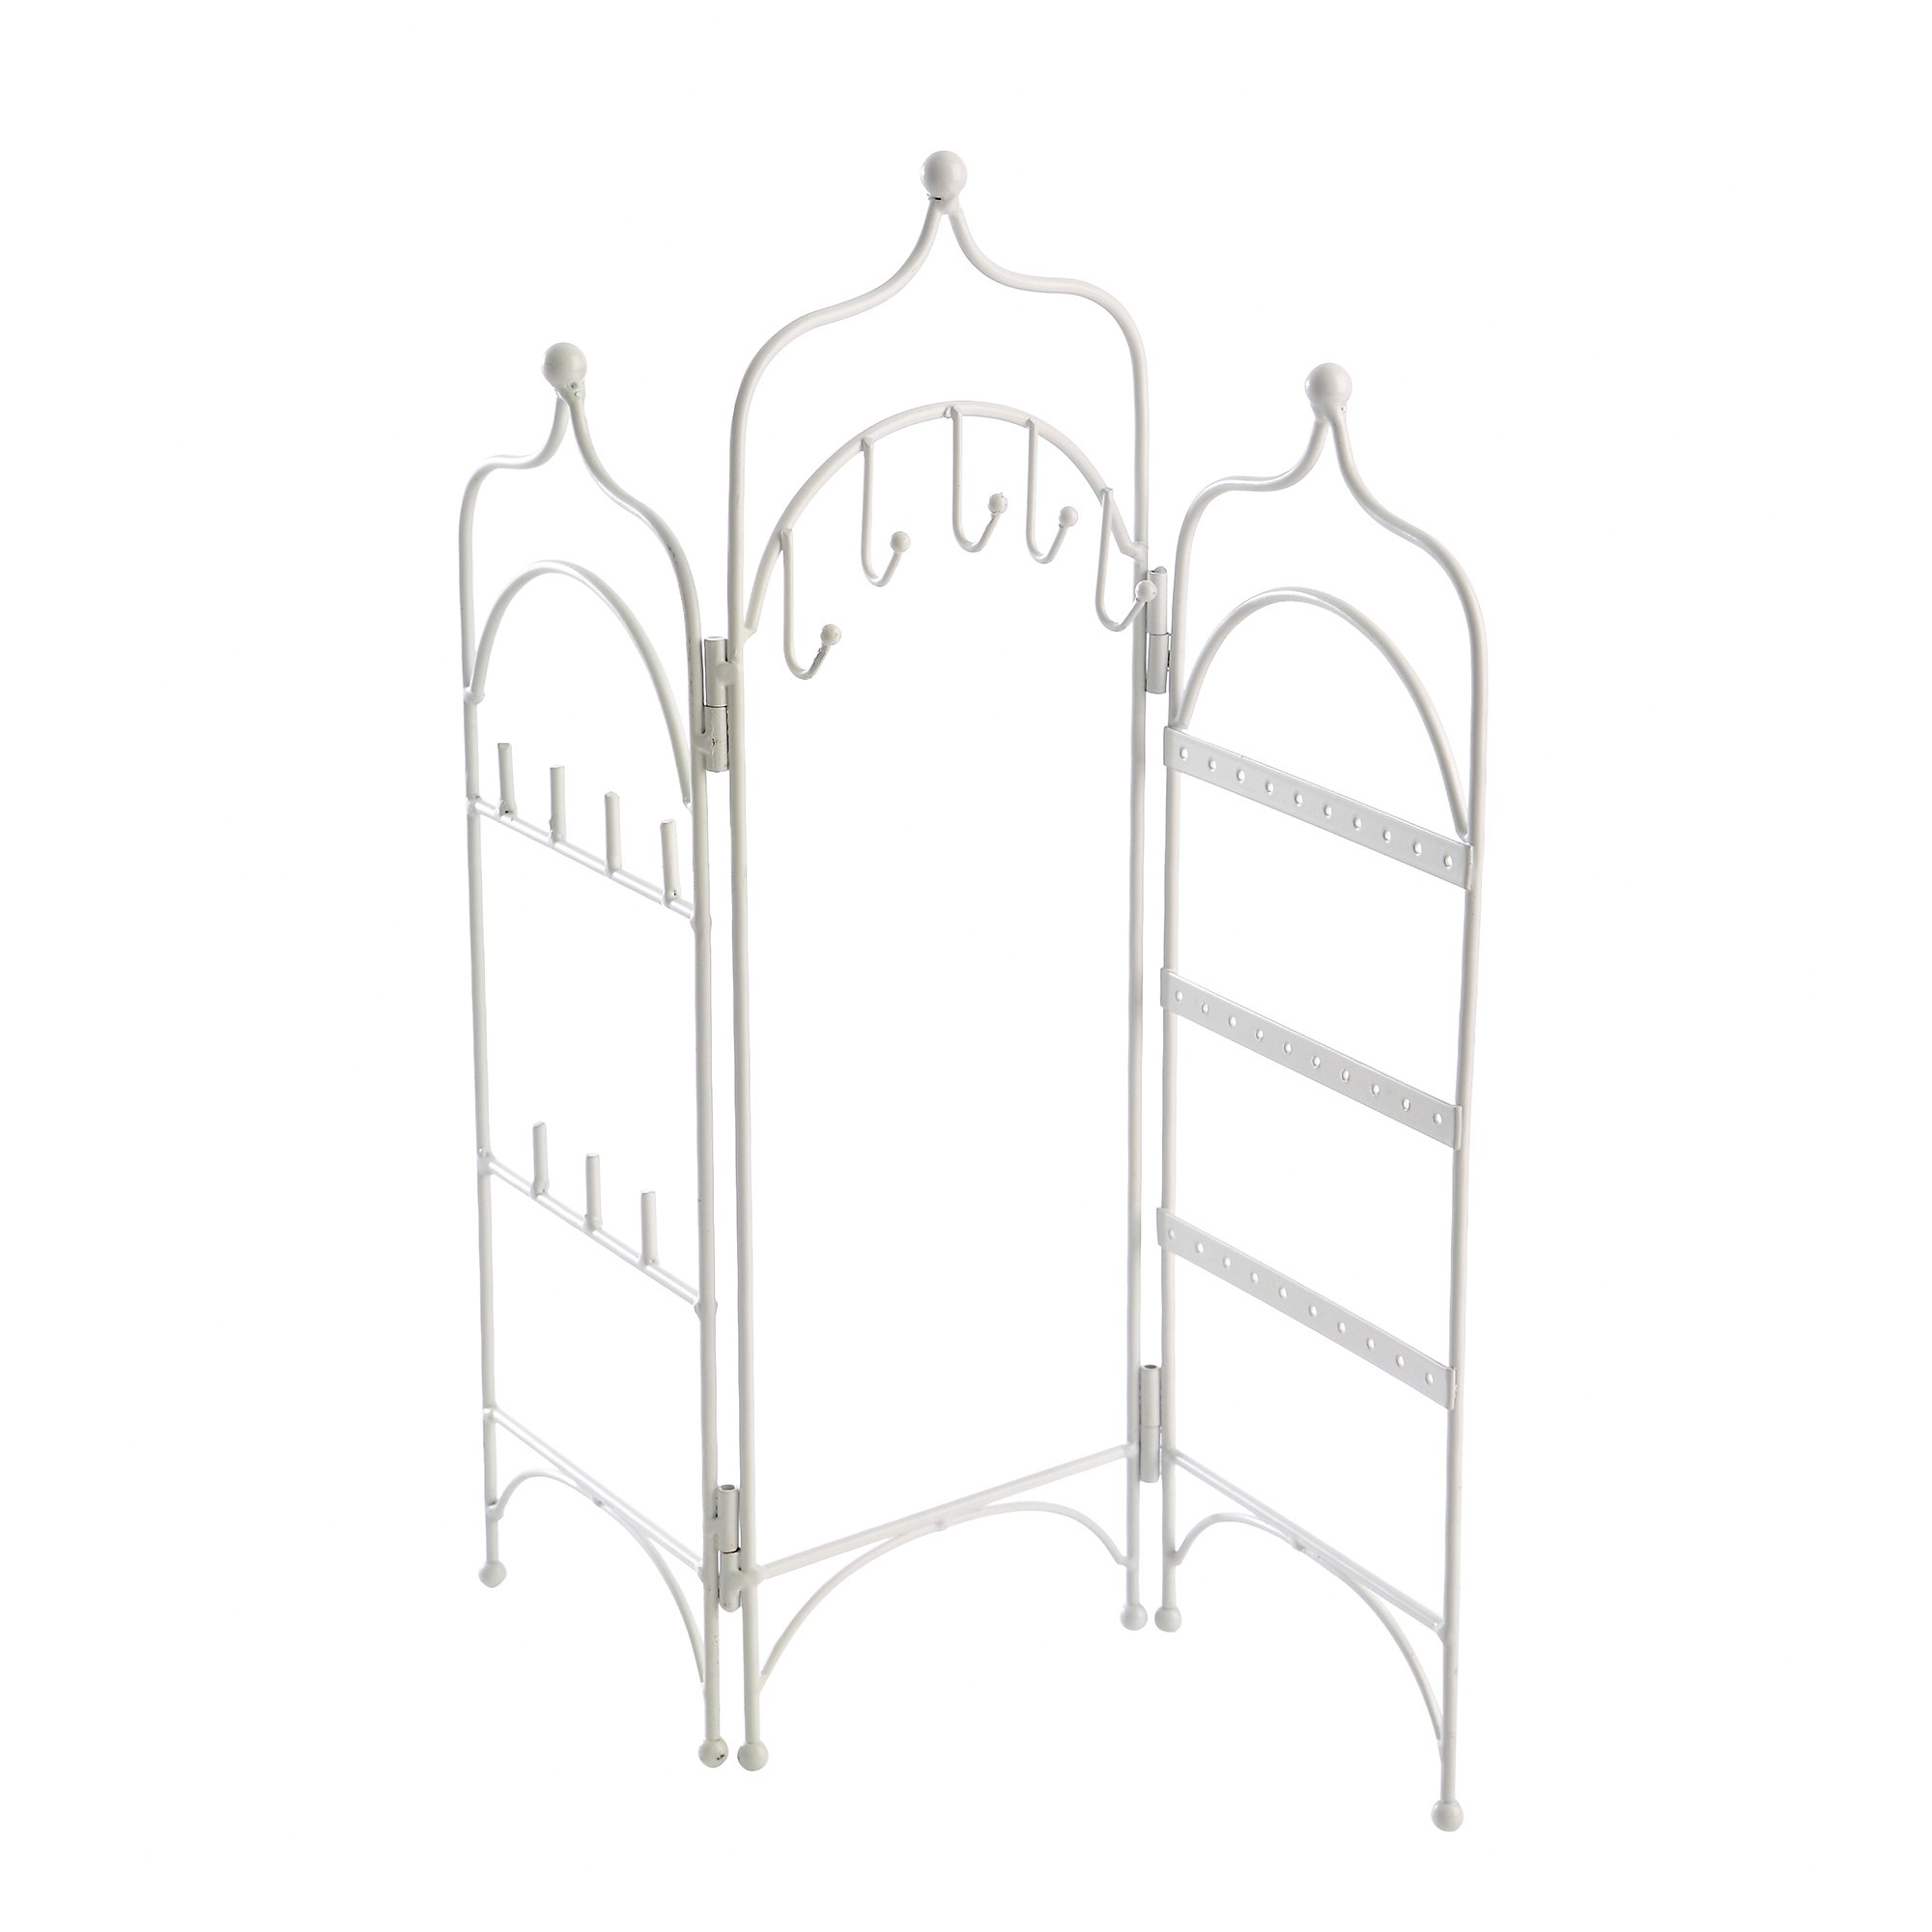 Modern White Metal 3 Panel Trellis Folding Jewelry Hanger Organizer for Bracelet, Earrings, Necklace